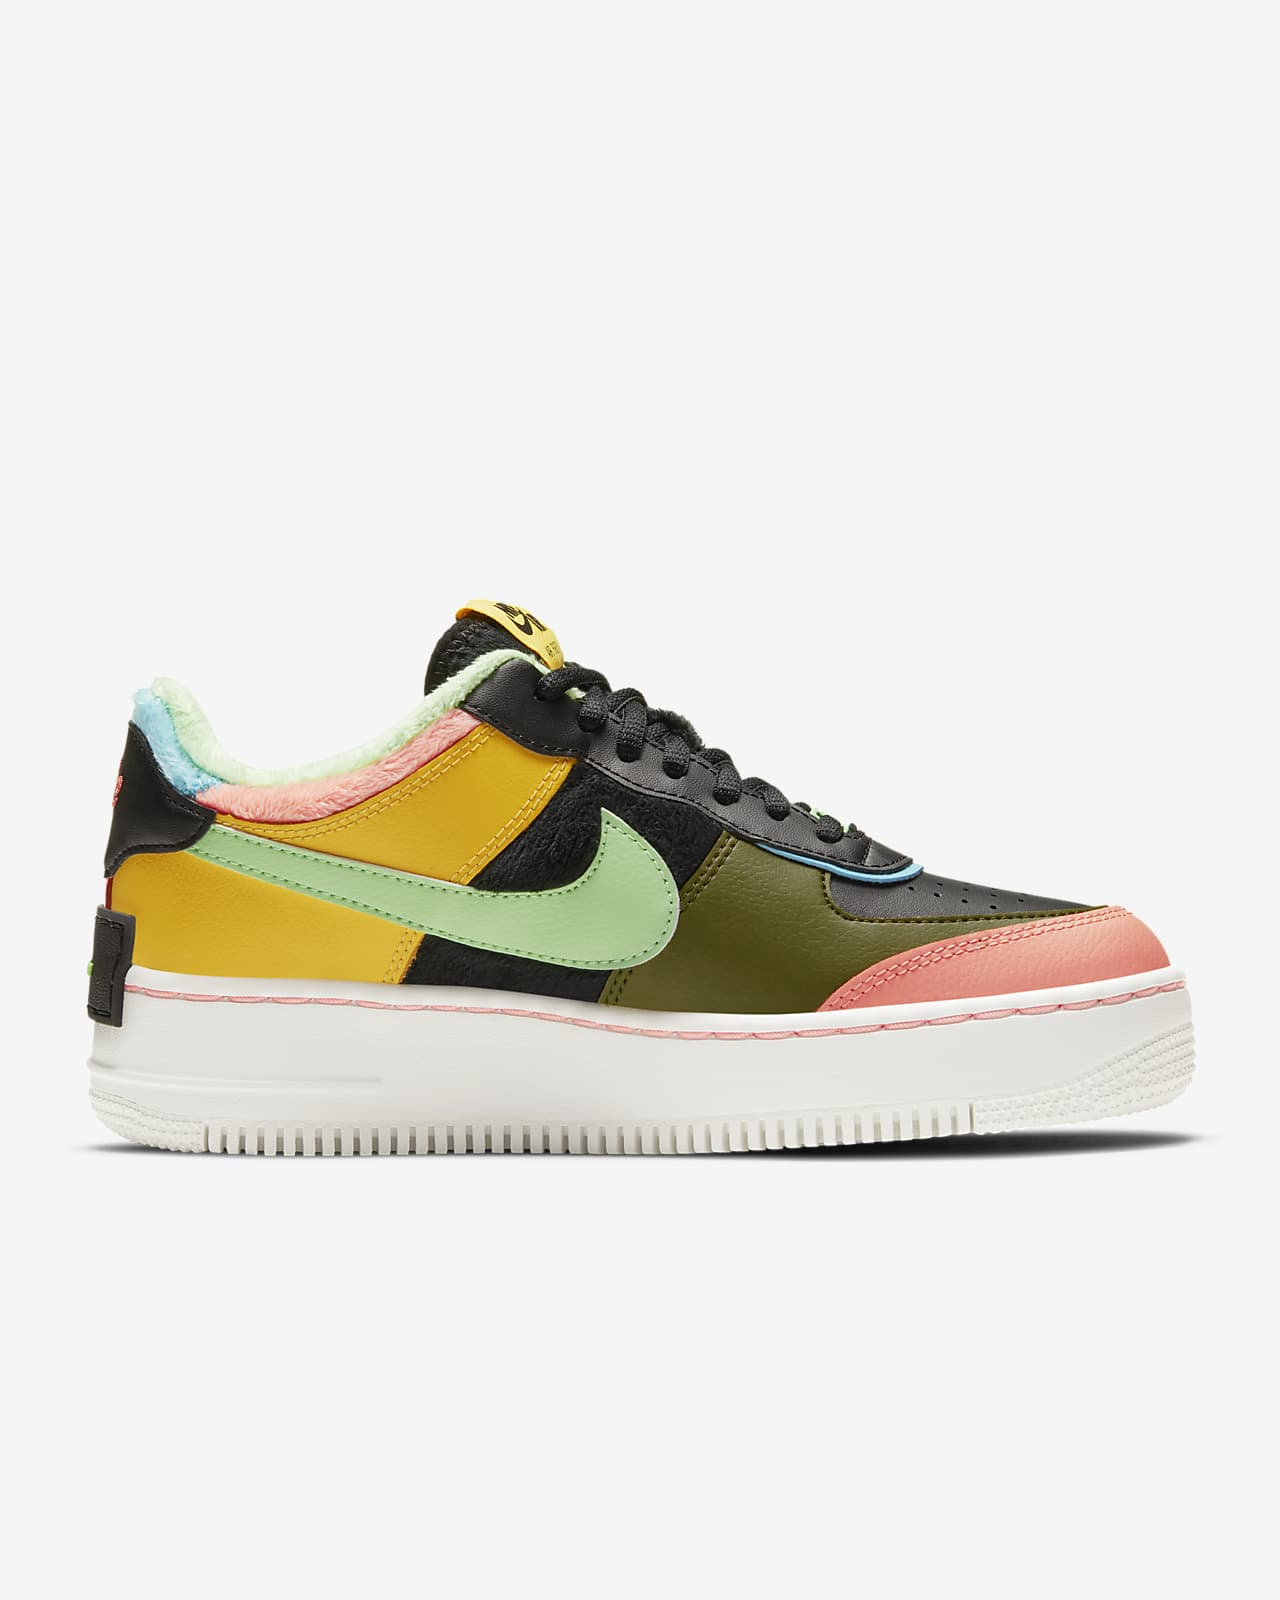 Nike Air Force 1 Shadow Se Women S Shoe Nike Com The original nike air force 1 shoe changed the sneaker game forever. nike air force 1 shadow se women s shoe